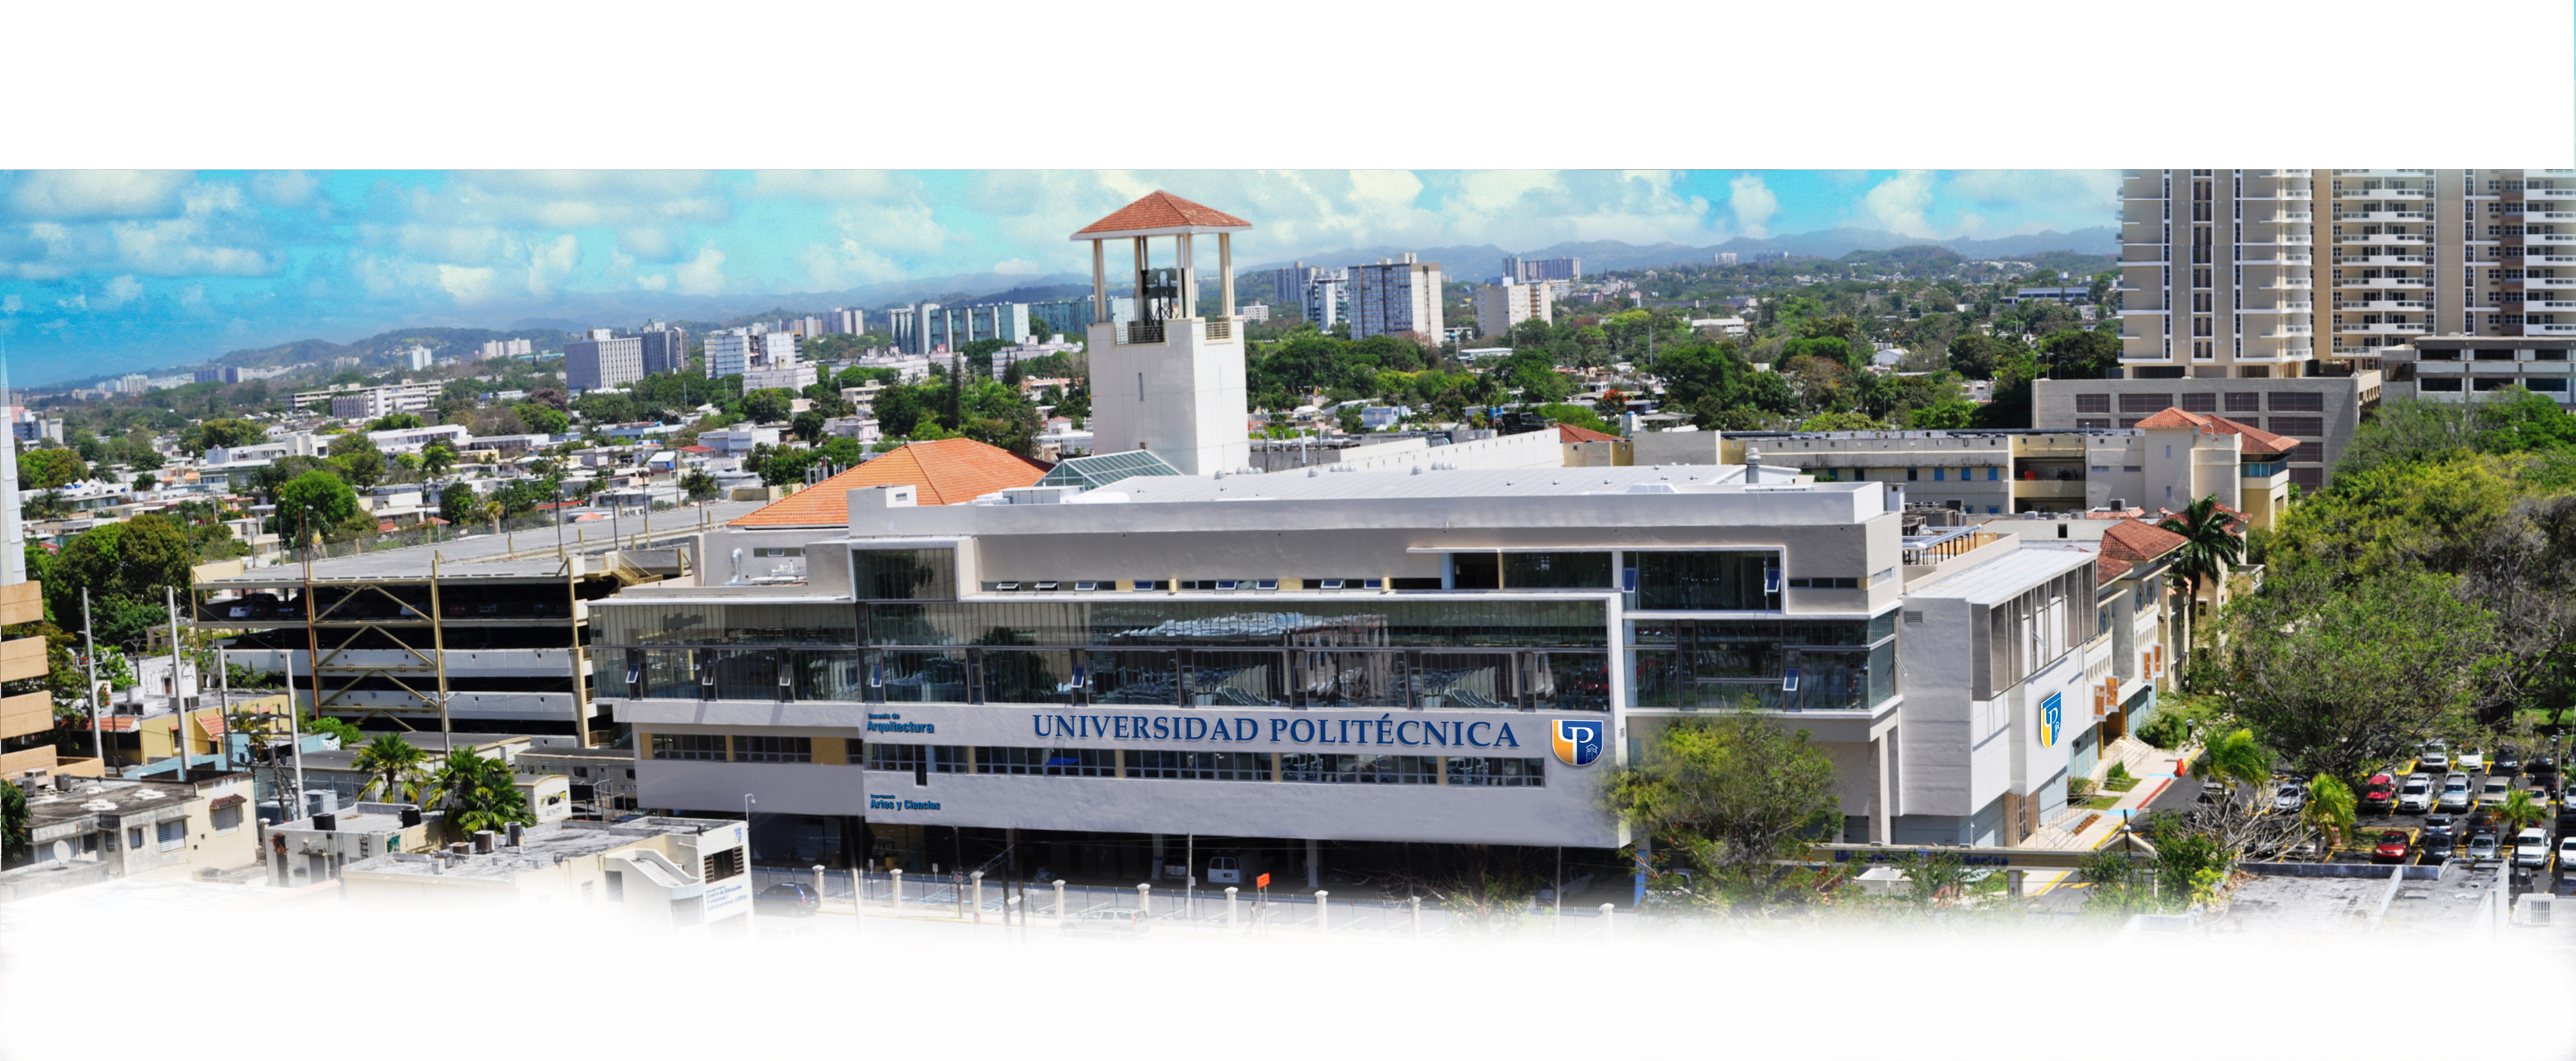 polytechnic university of puerto rico essay Student life sports polytechnic university, university of puerto rico  asked to complete and submit the recommendation letter and character essay for.